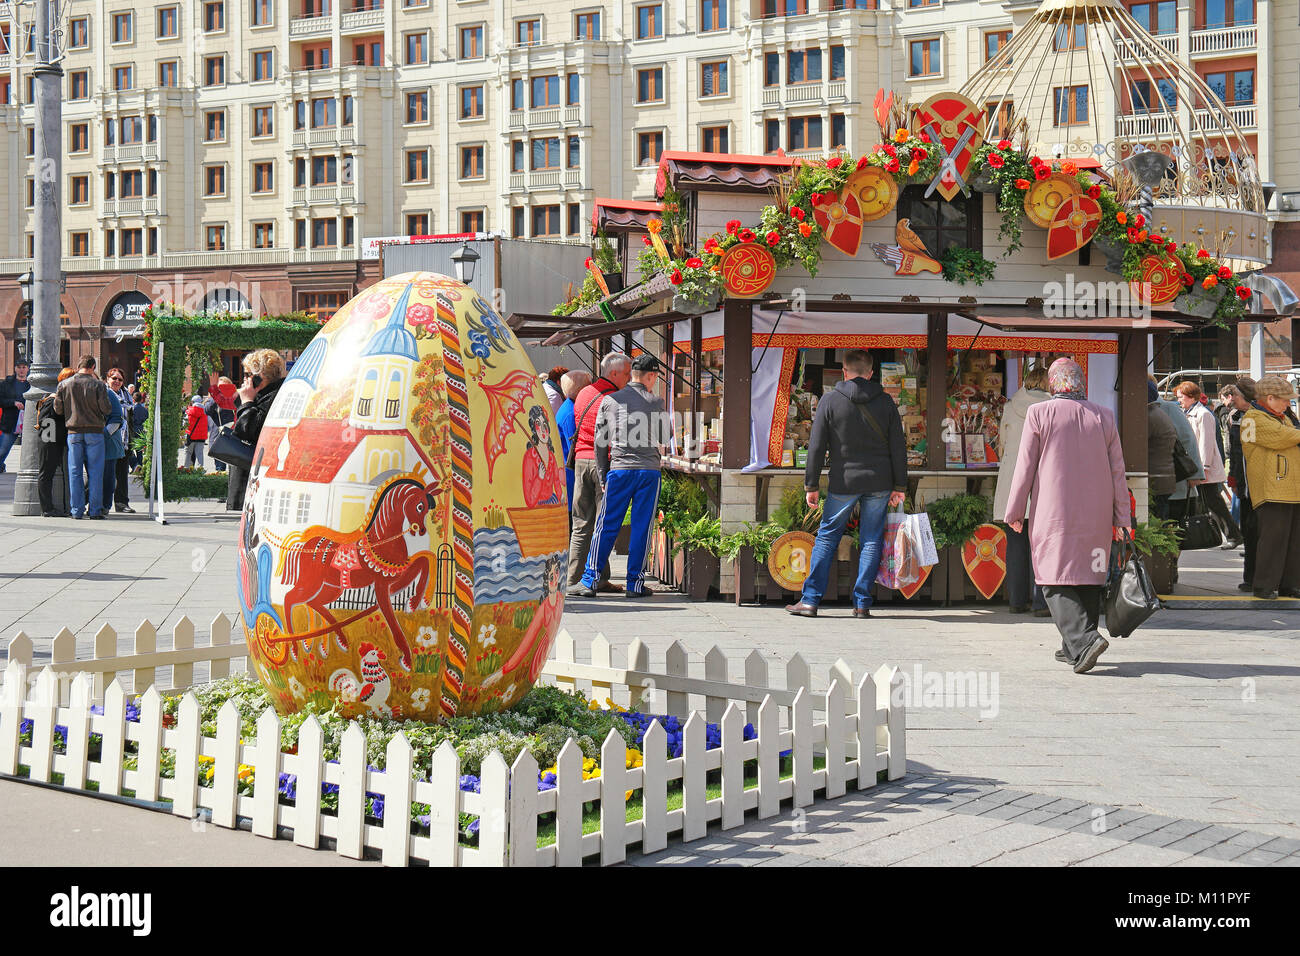 MOSCOW, RUSSIA - April 24.2016: The great Easter egg on a festive fair in the city center - Stock Image